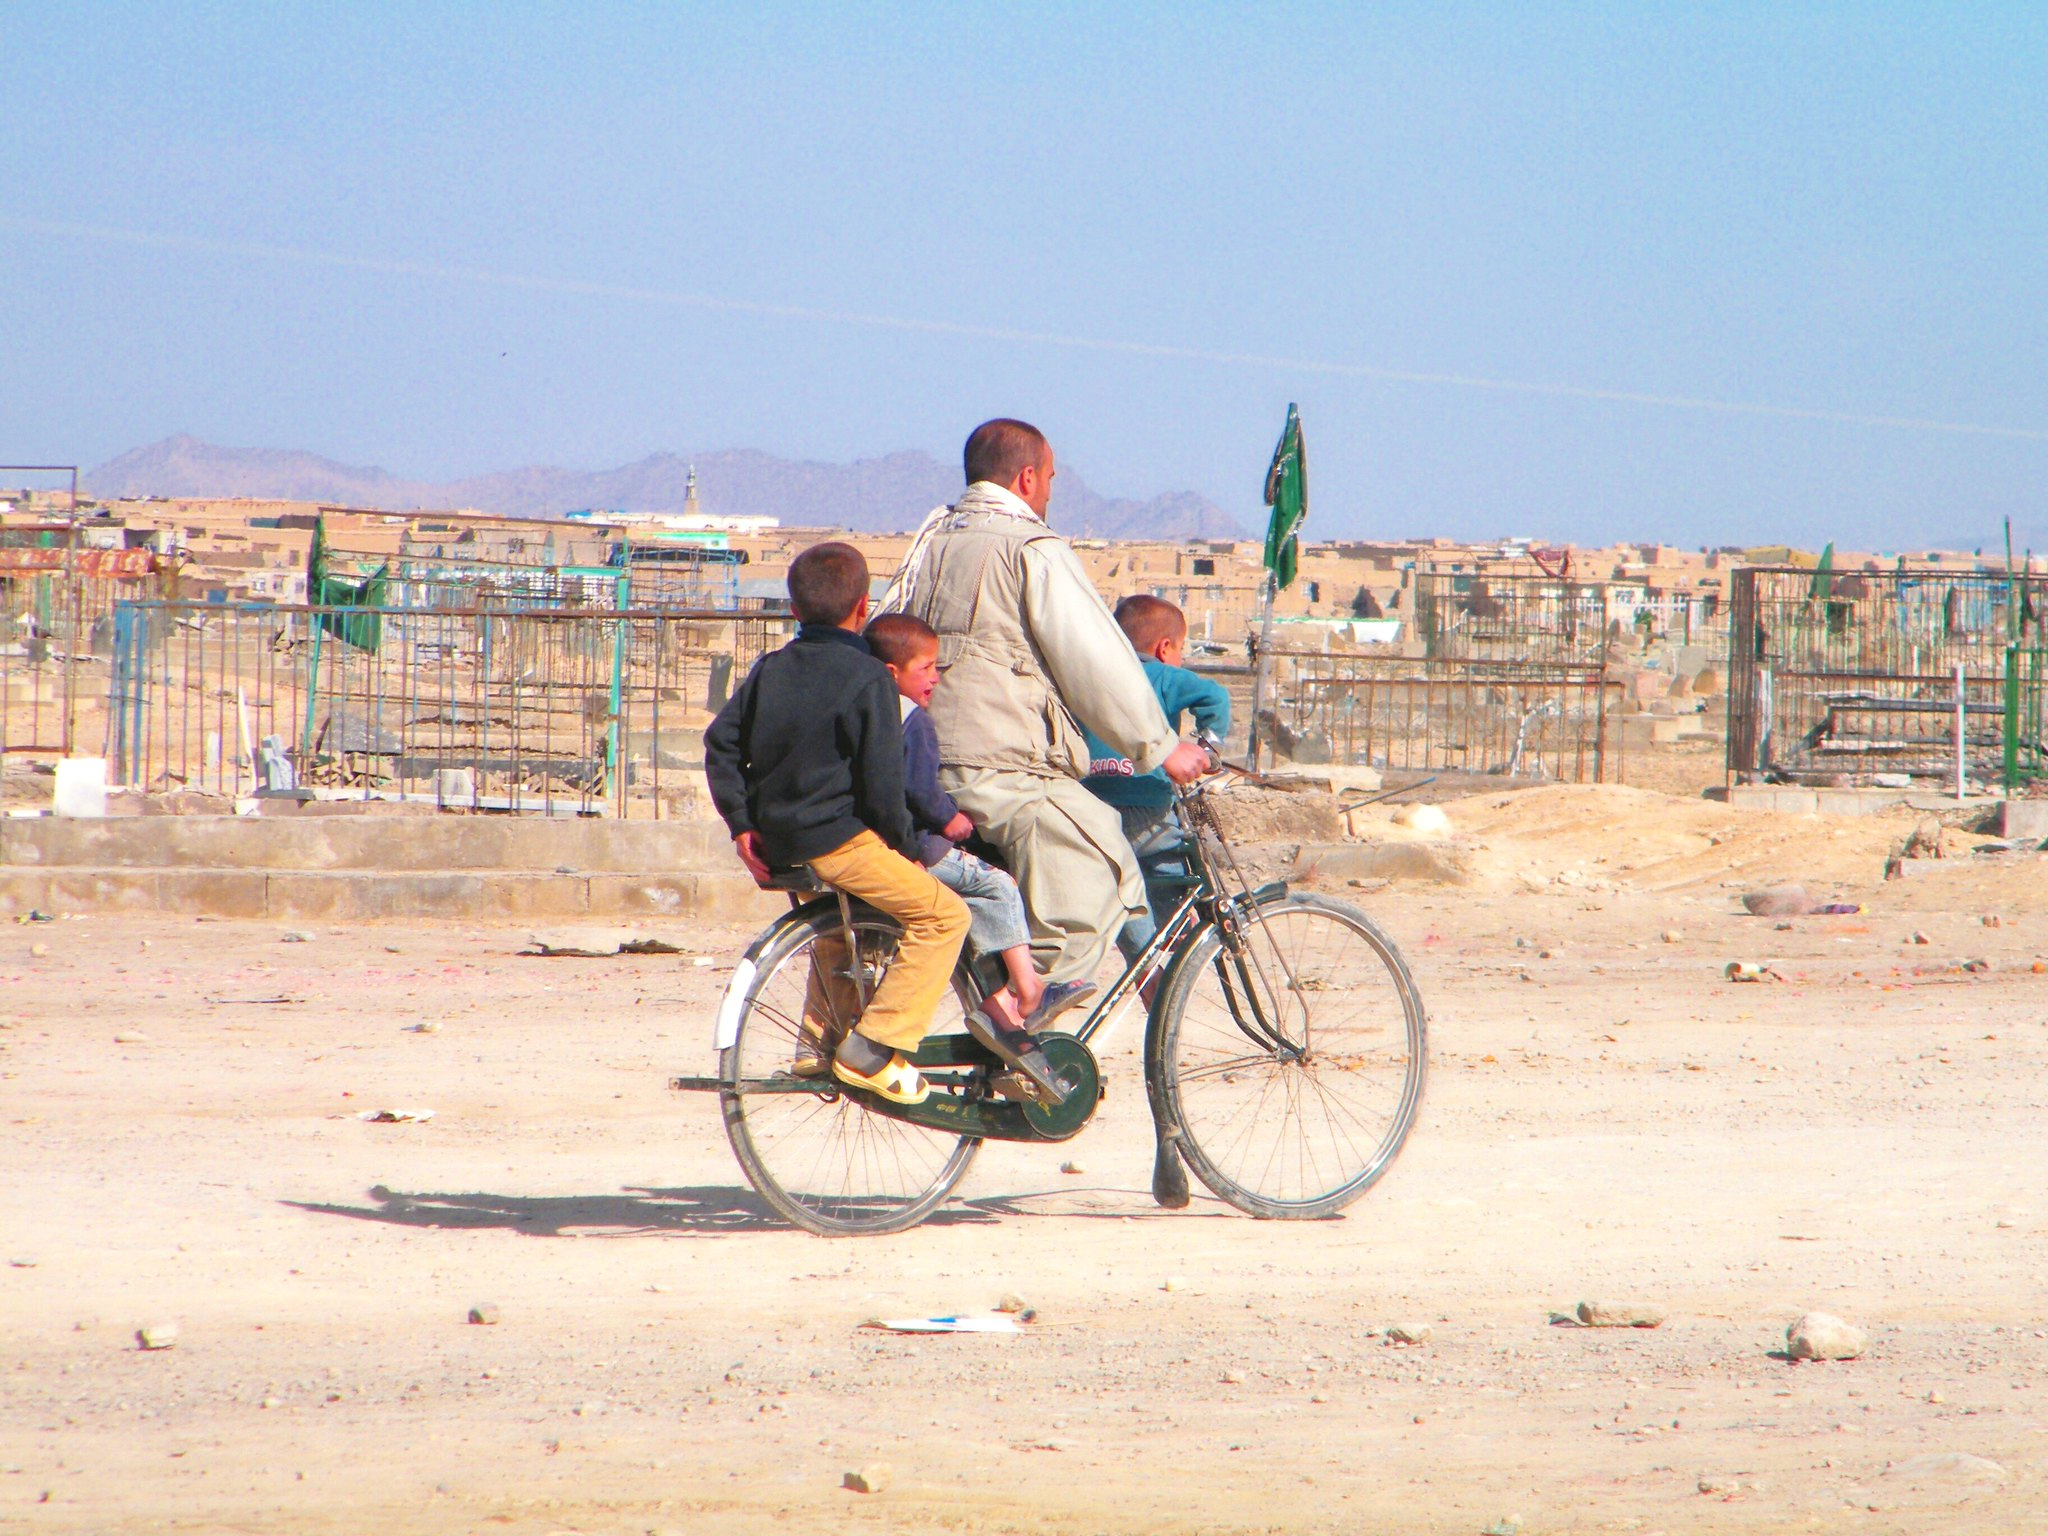 A father and three kids all ride a bicycle together in Afghanistan.